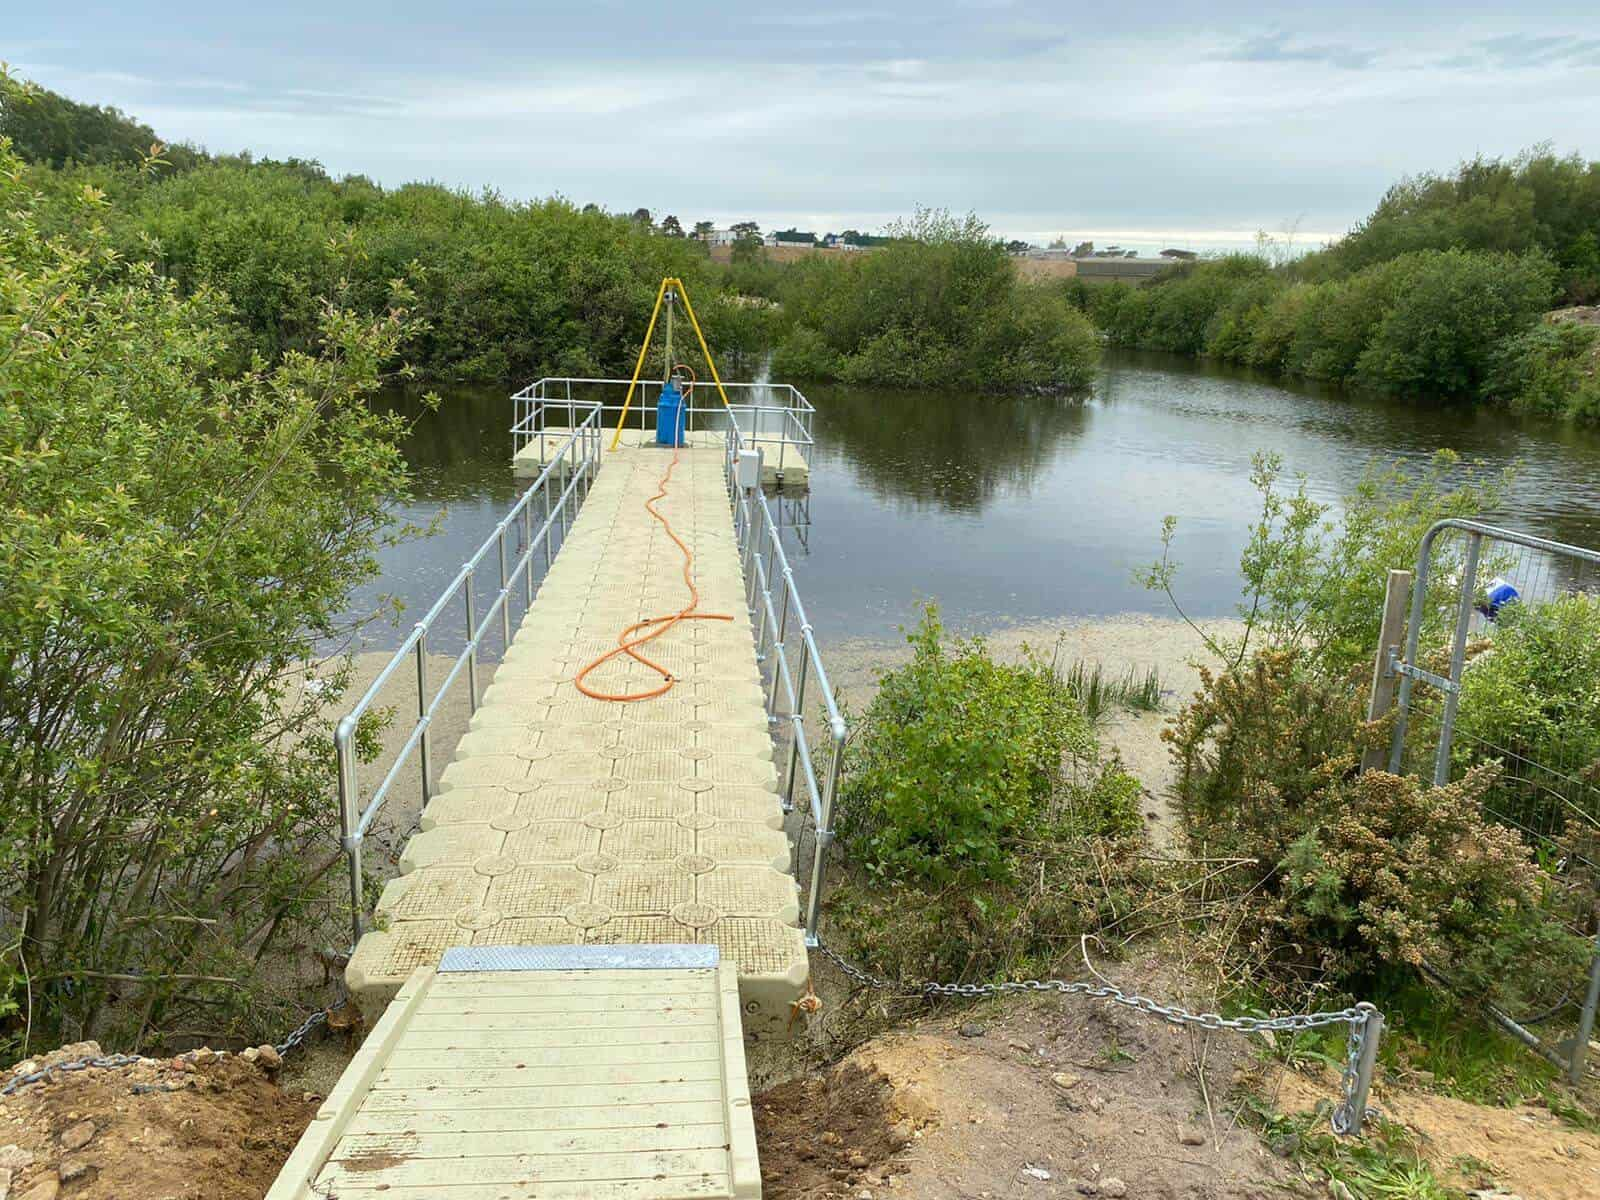 Modular cube pontoon with handrails, with stabalisation unit and chain block